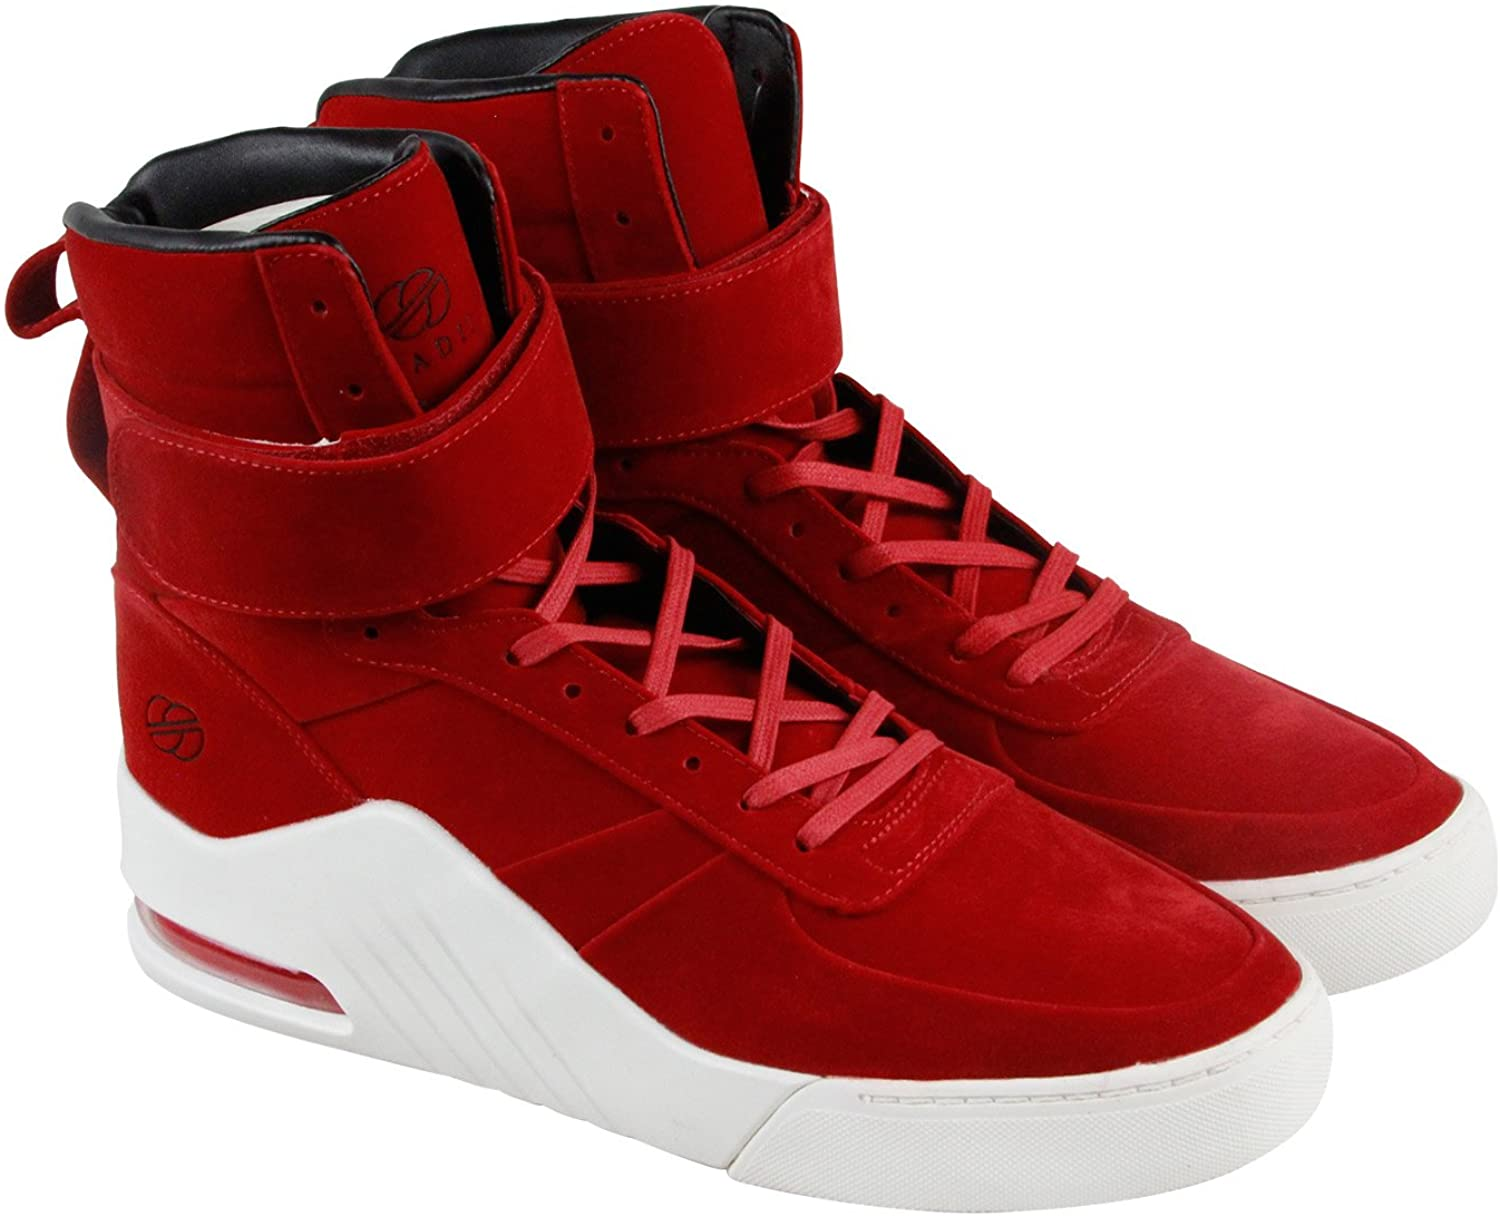 Radii mens Apex